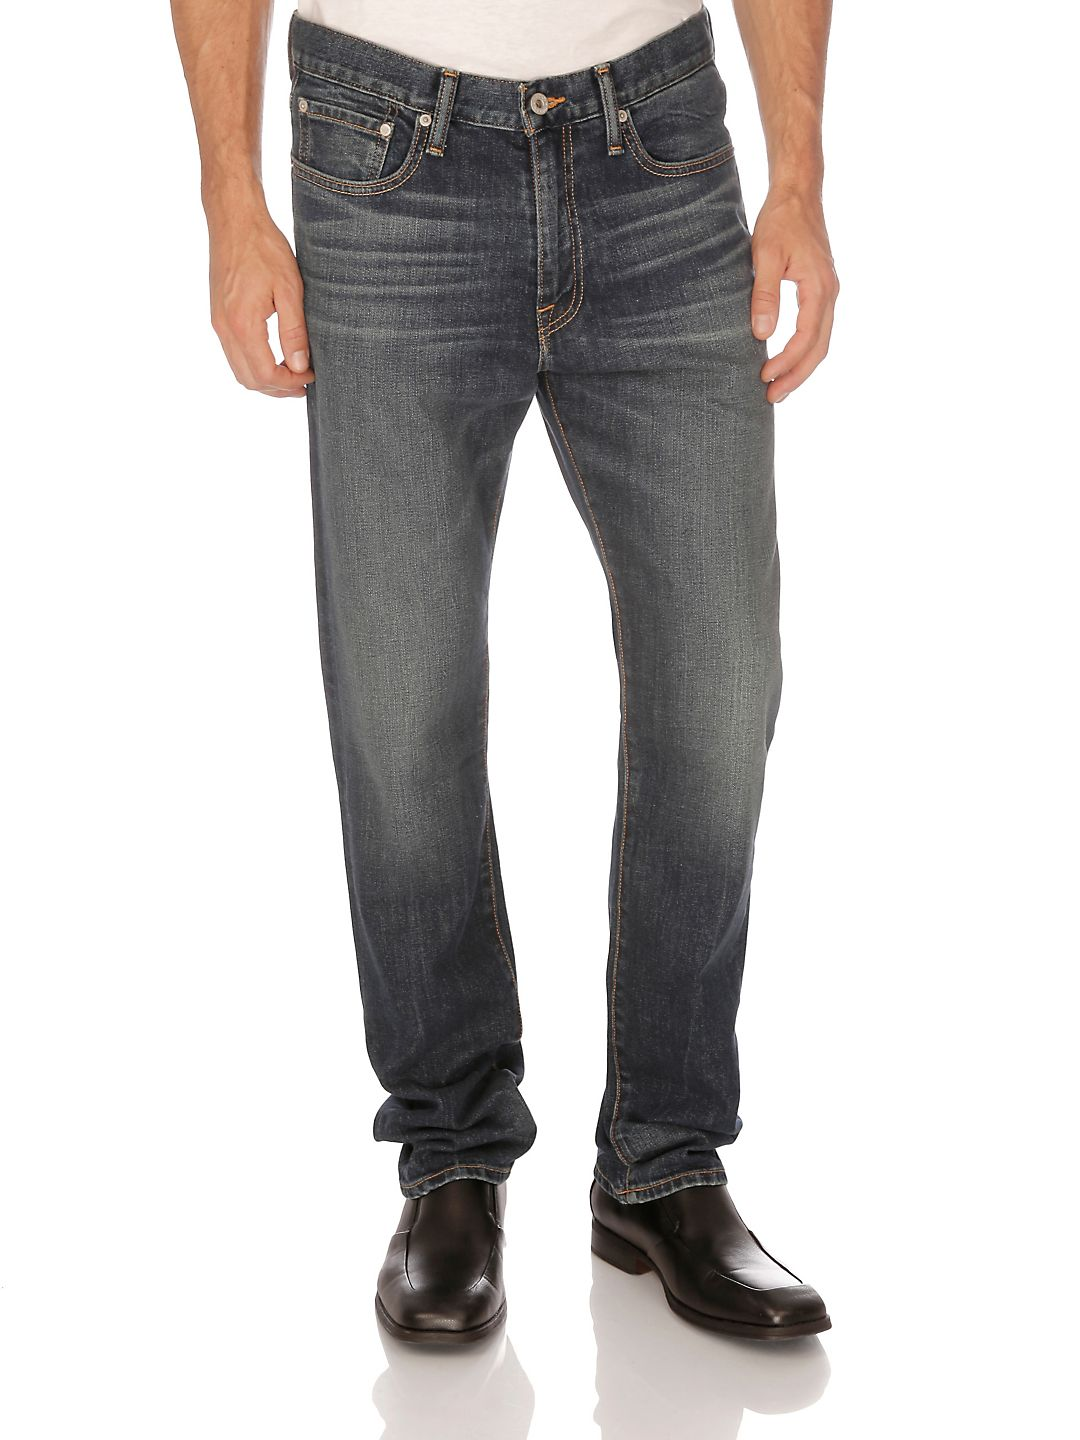 410 Athletic Fit Corte Madera Wash Jeans